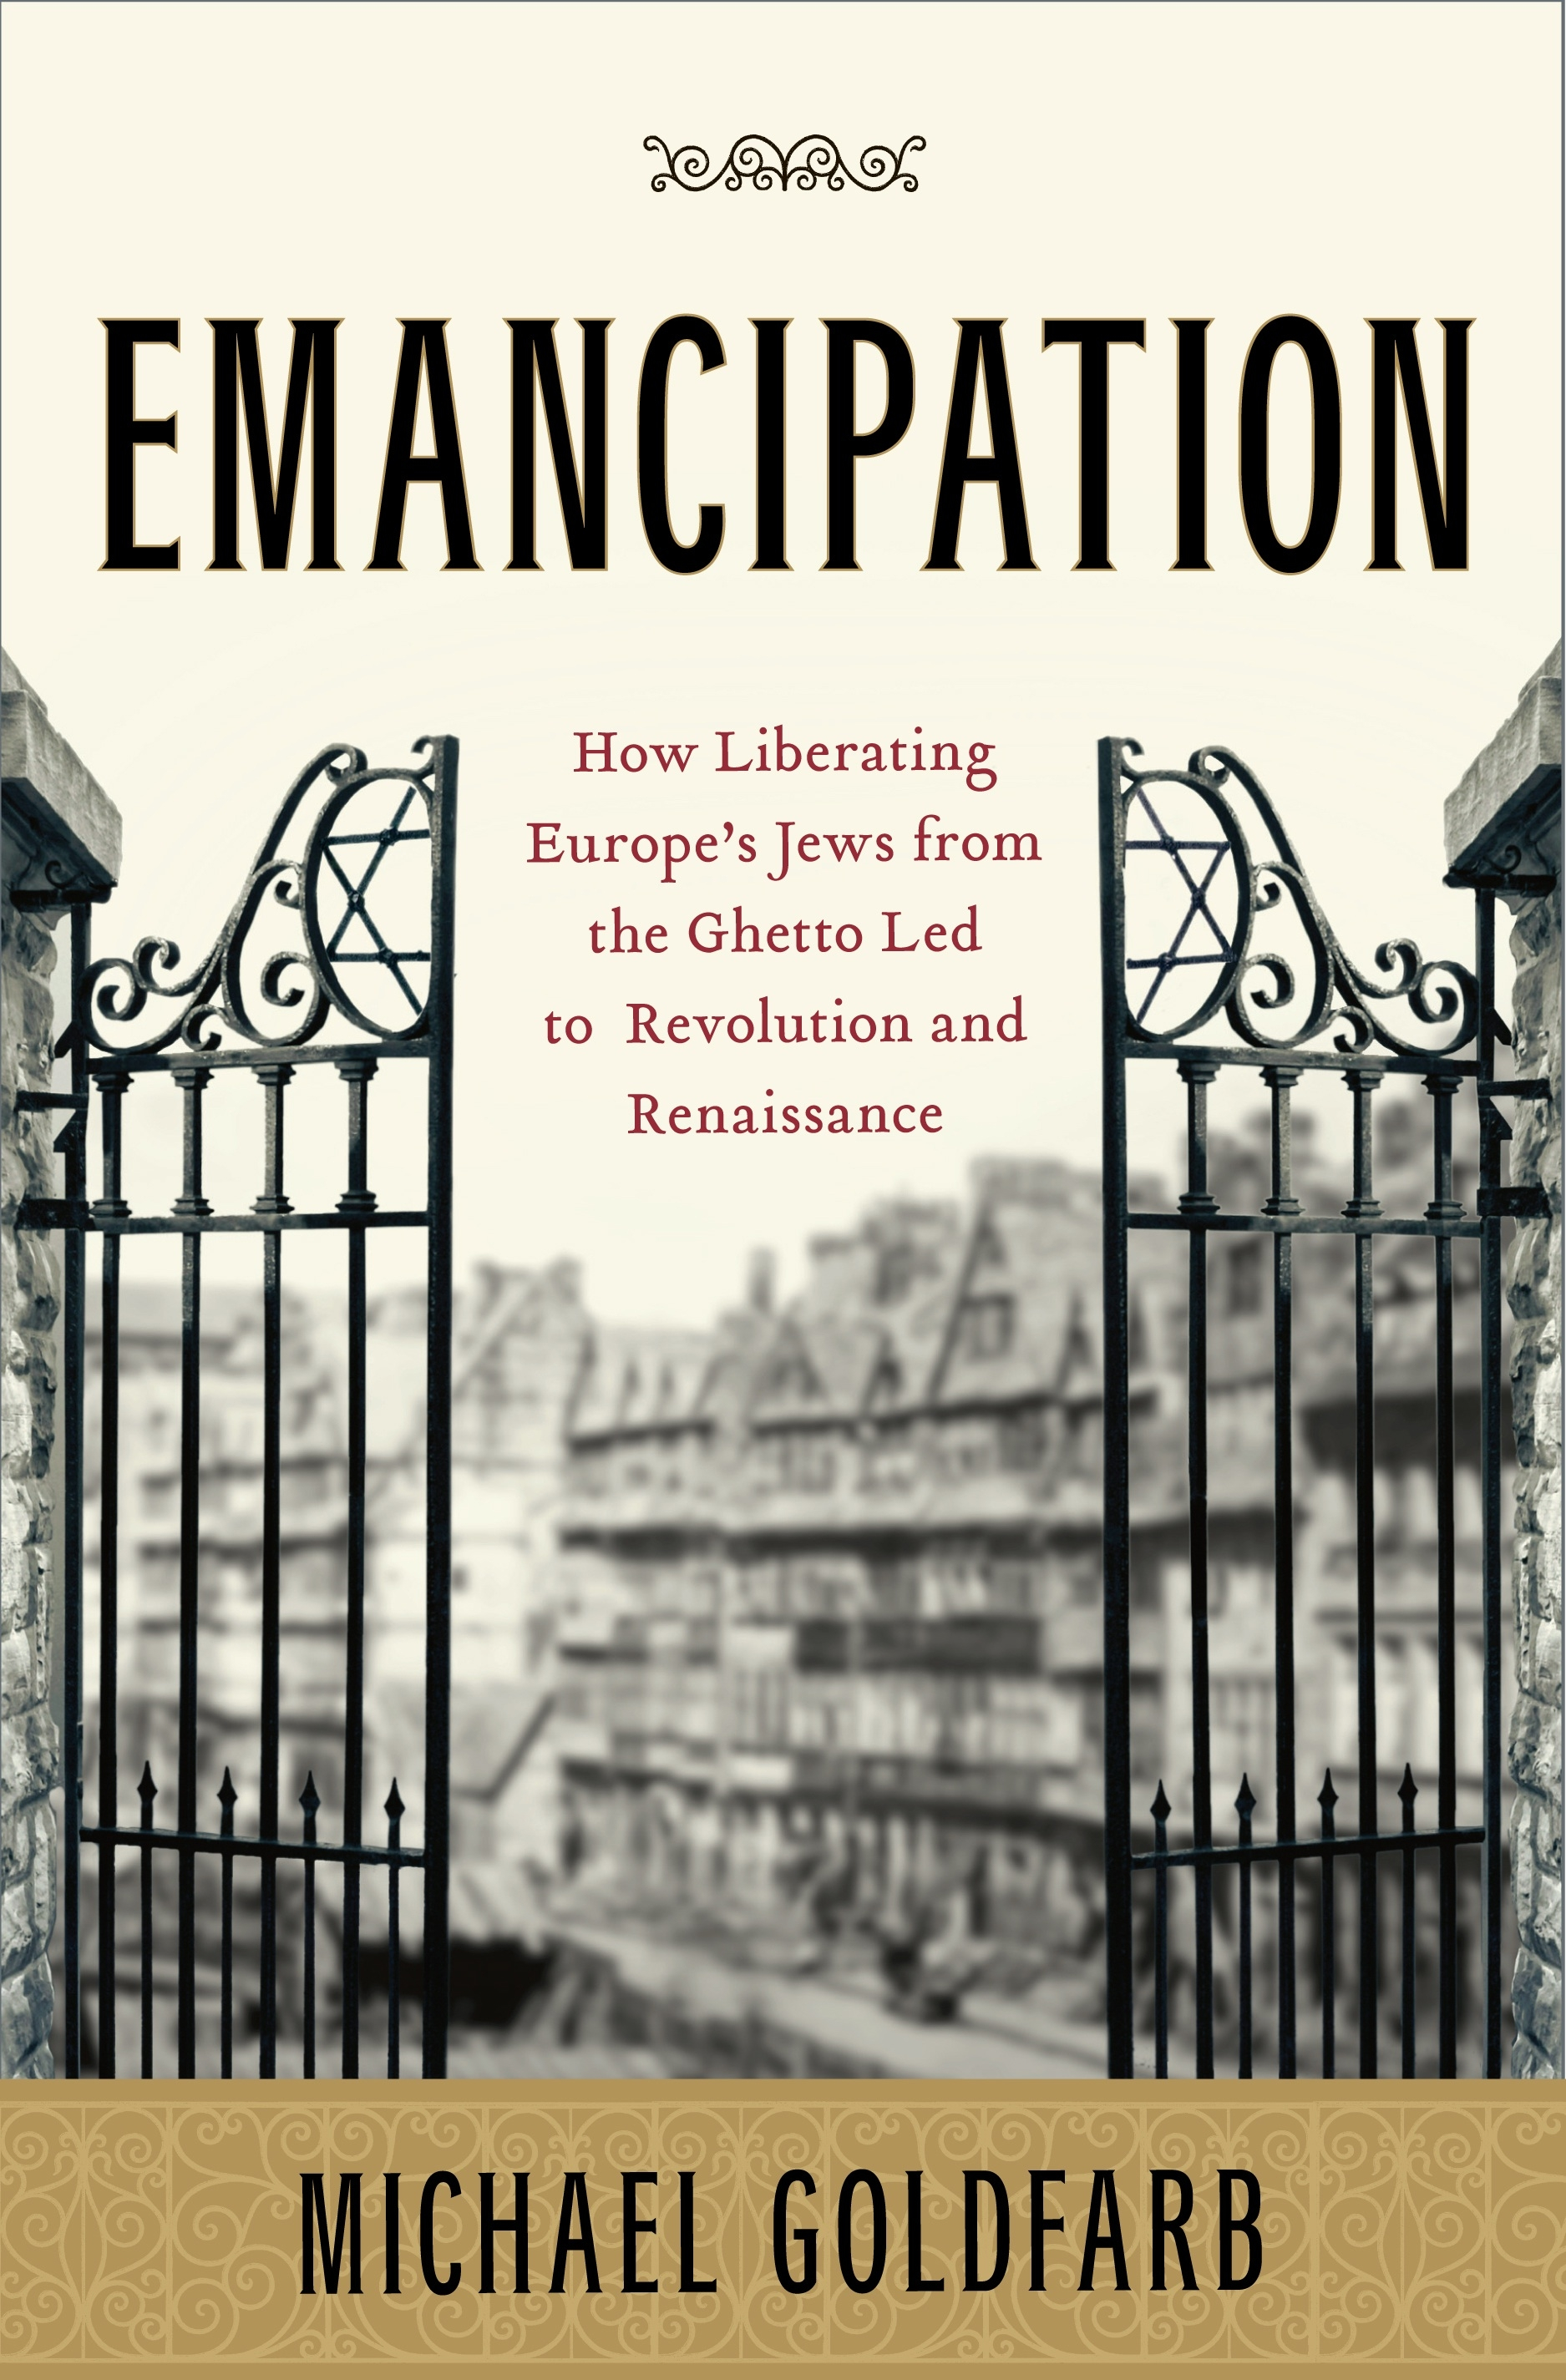 emancipation from segregation Changing america: the emancipation proclamation, 1863, and the march on washington, 1963 1963 1863  racial segregation was legal in all states.